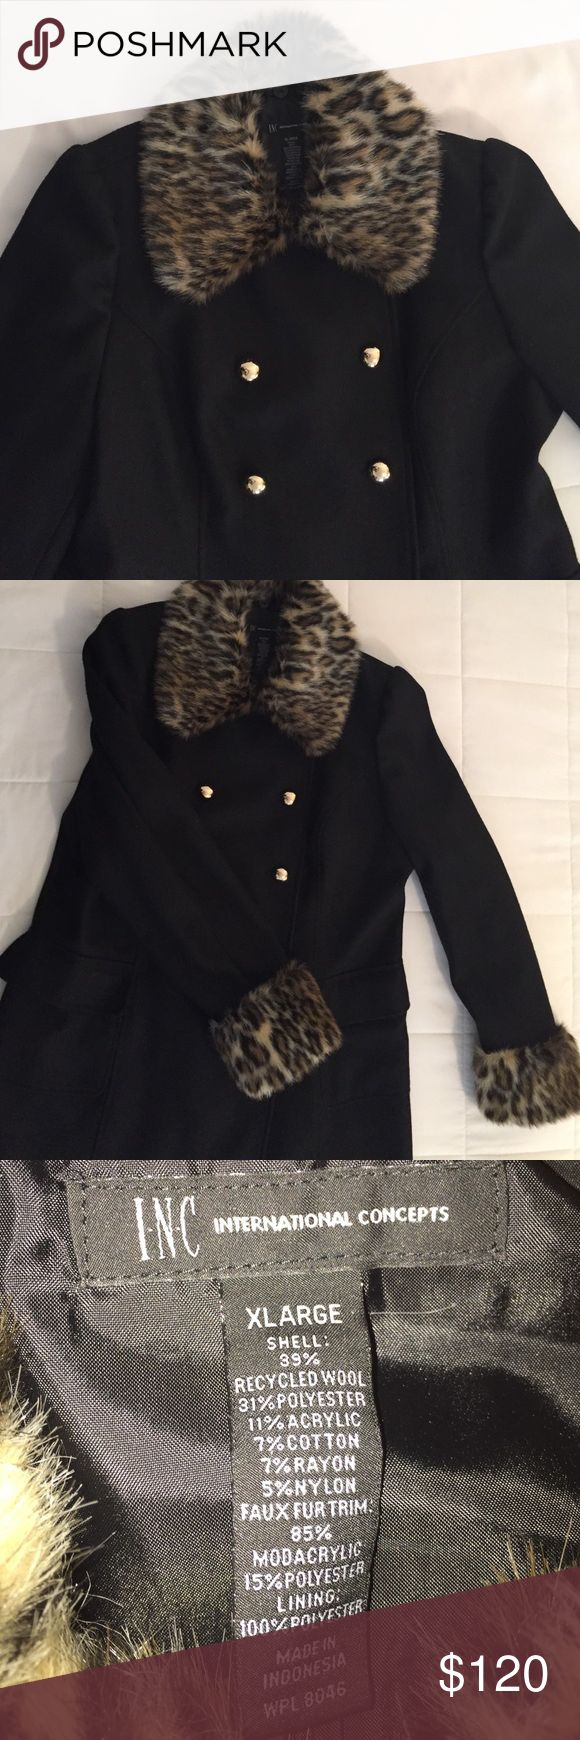 INC Leopard coat with faux fur collar This super cute coat is very stylish and fun! It has leopard faux fur cuffs and collar. The faux fur on the collar can be removed. It is double breasted with cute gold buttons.  Price resuced for discounted shipping until 12/11/16. INC International Concepts Jackets & Coats Pea Coats